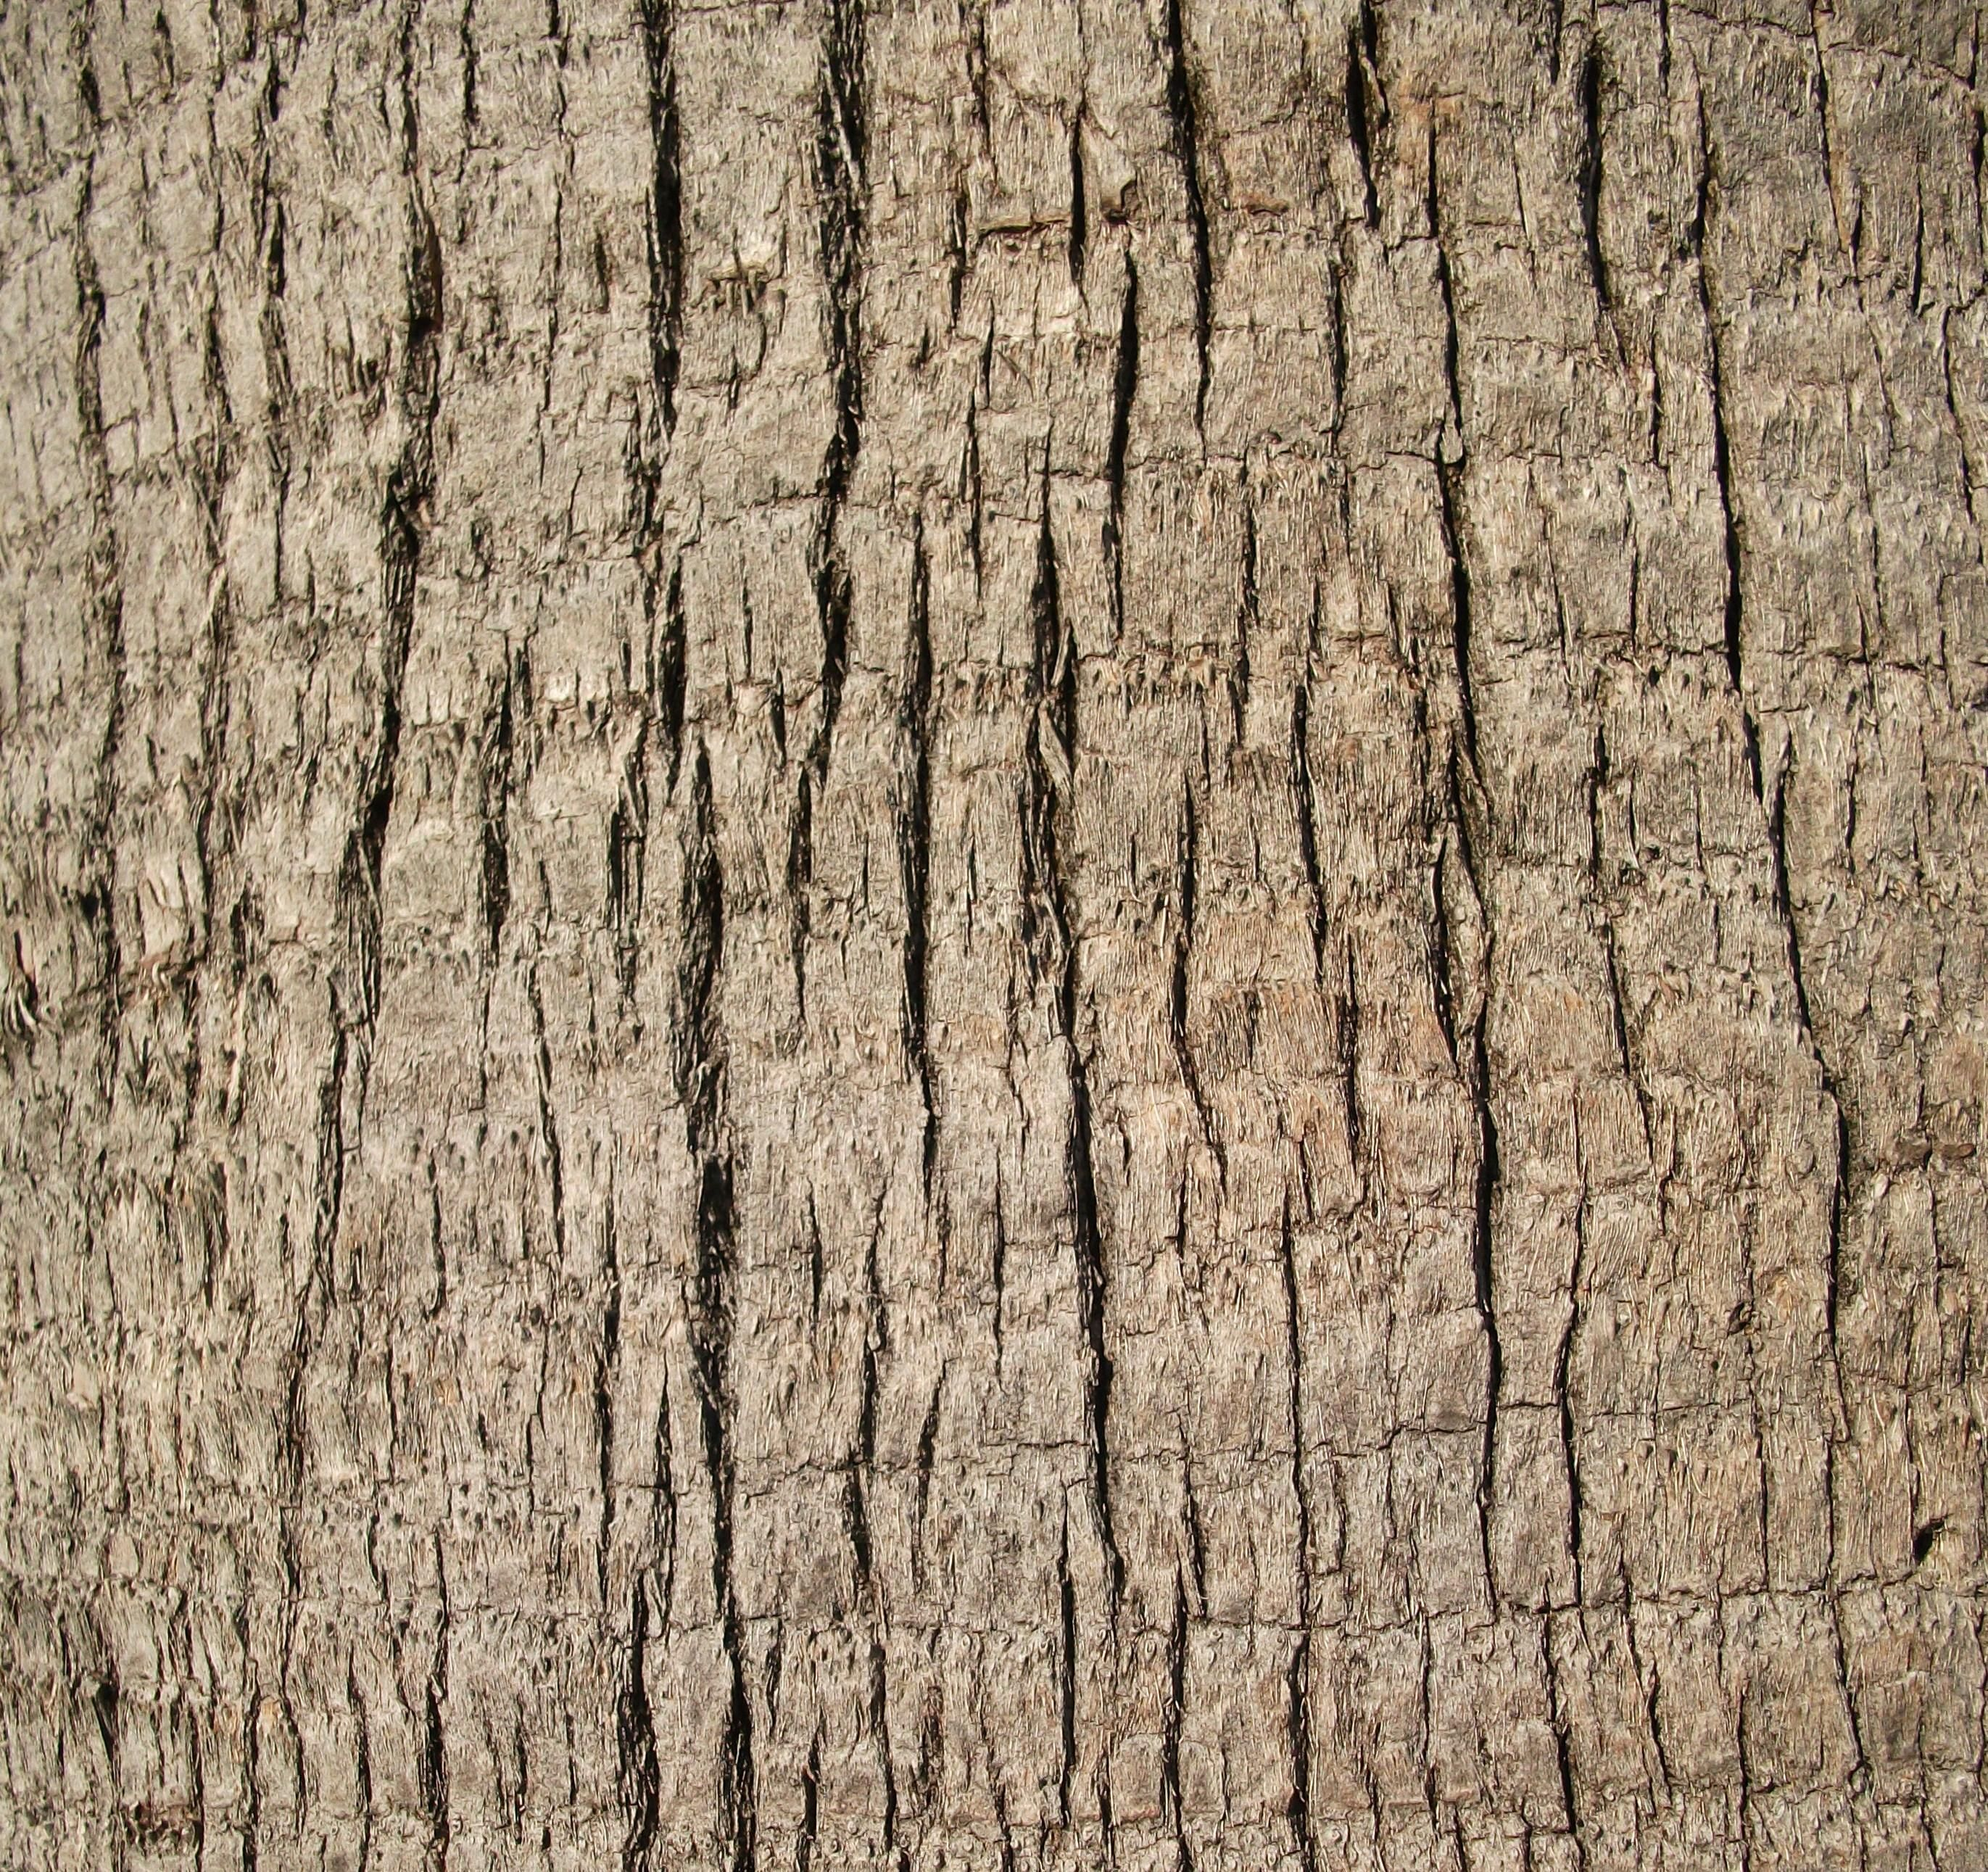 Free picture: up-close, palm tree, trunk, texture